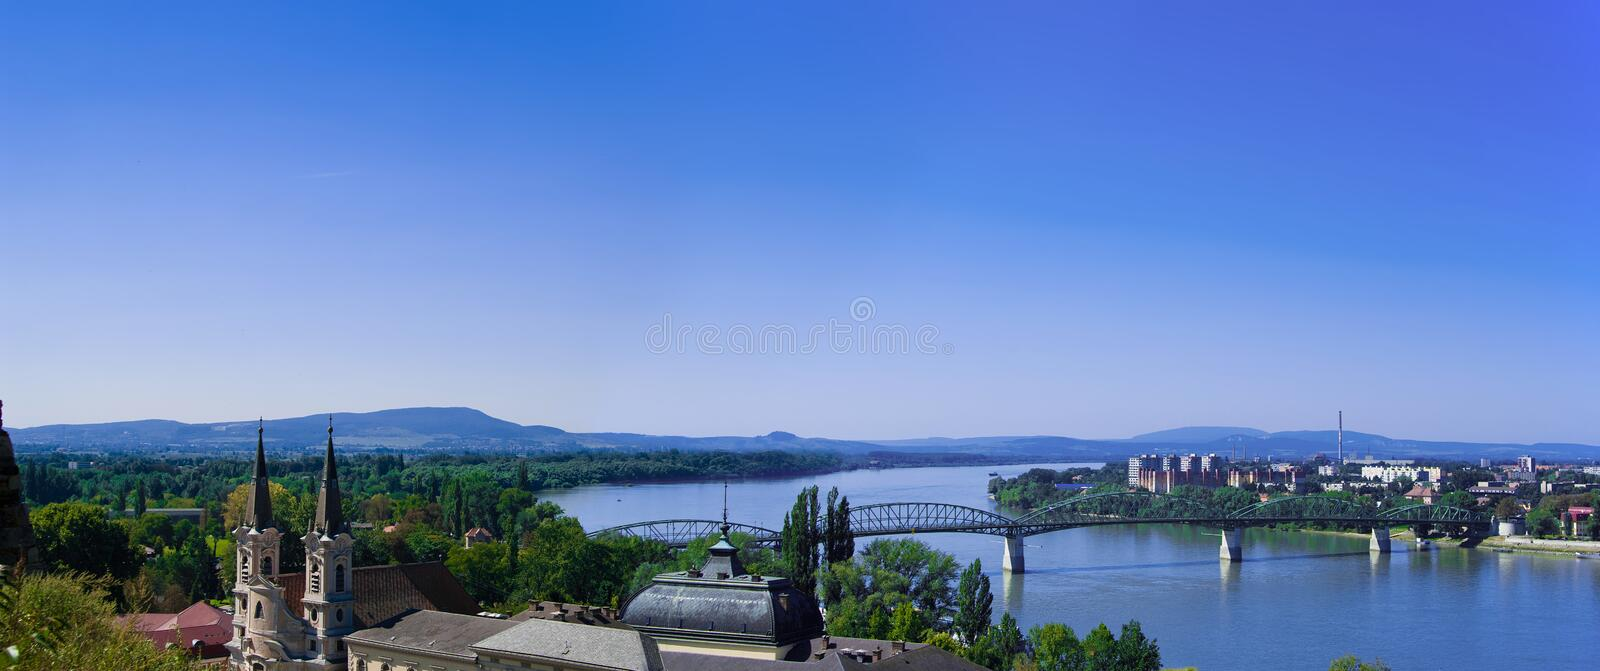 The Danube curve panorama stock photos